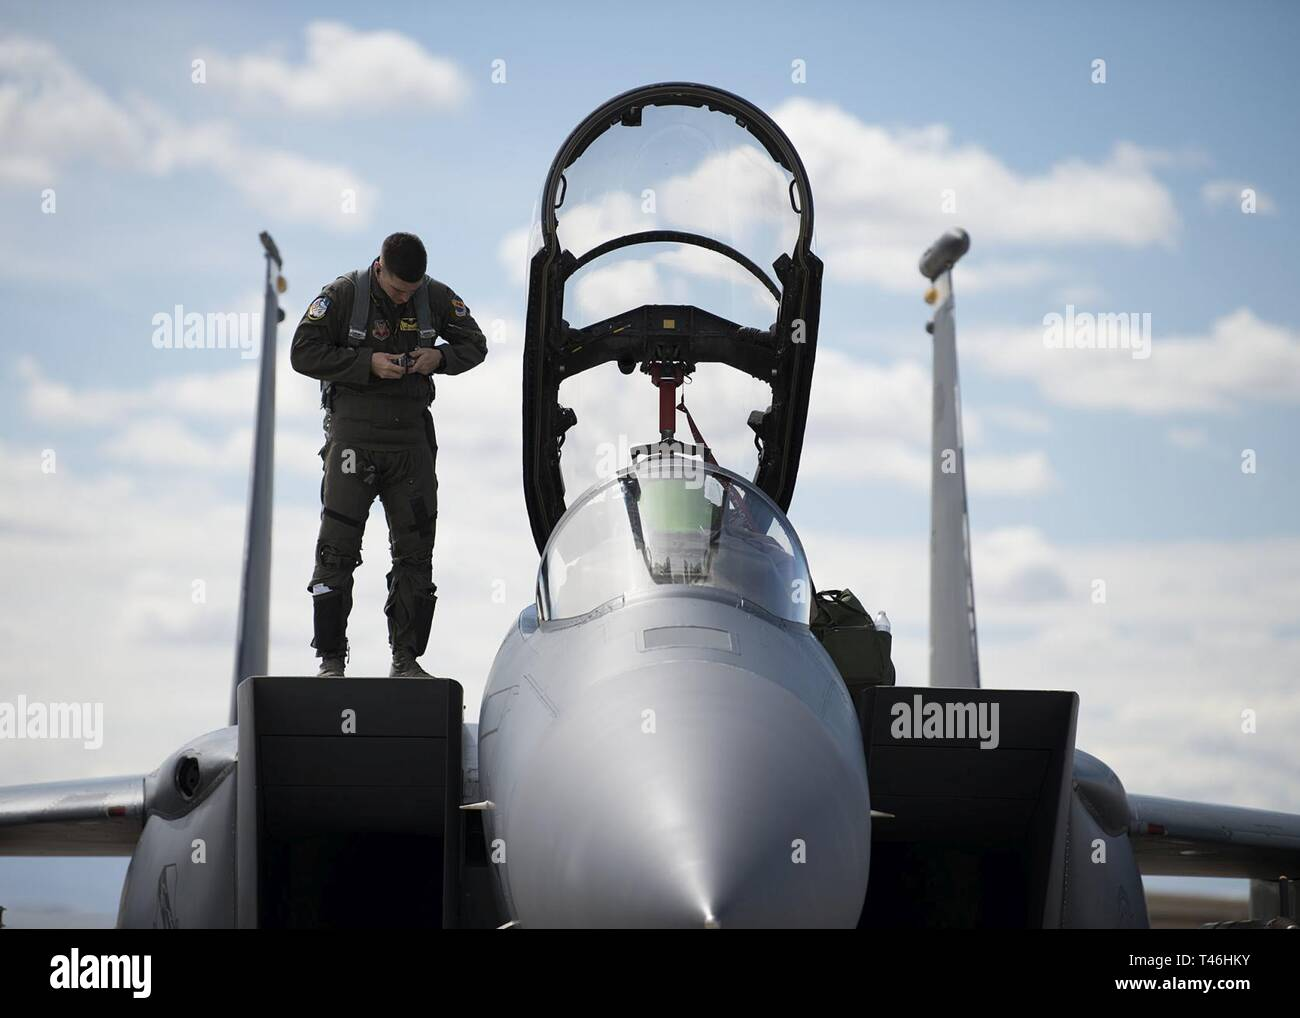 U.S. Air Force 1st Lt. Mathew Clutts, a Weapons System Officer (WSO) on an F-15E Strike Eagle fighter jet assigned to the 336th Fighter squadron, buckles up his harness while standing on top of an F-15E at Nellis Air Force Base, Nev., March 12, 2019. A WSO's job is to select targets and navigate with the aid of a moving map display, produced by an AlliedSignal remote film strip reader. Stock Photo